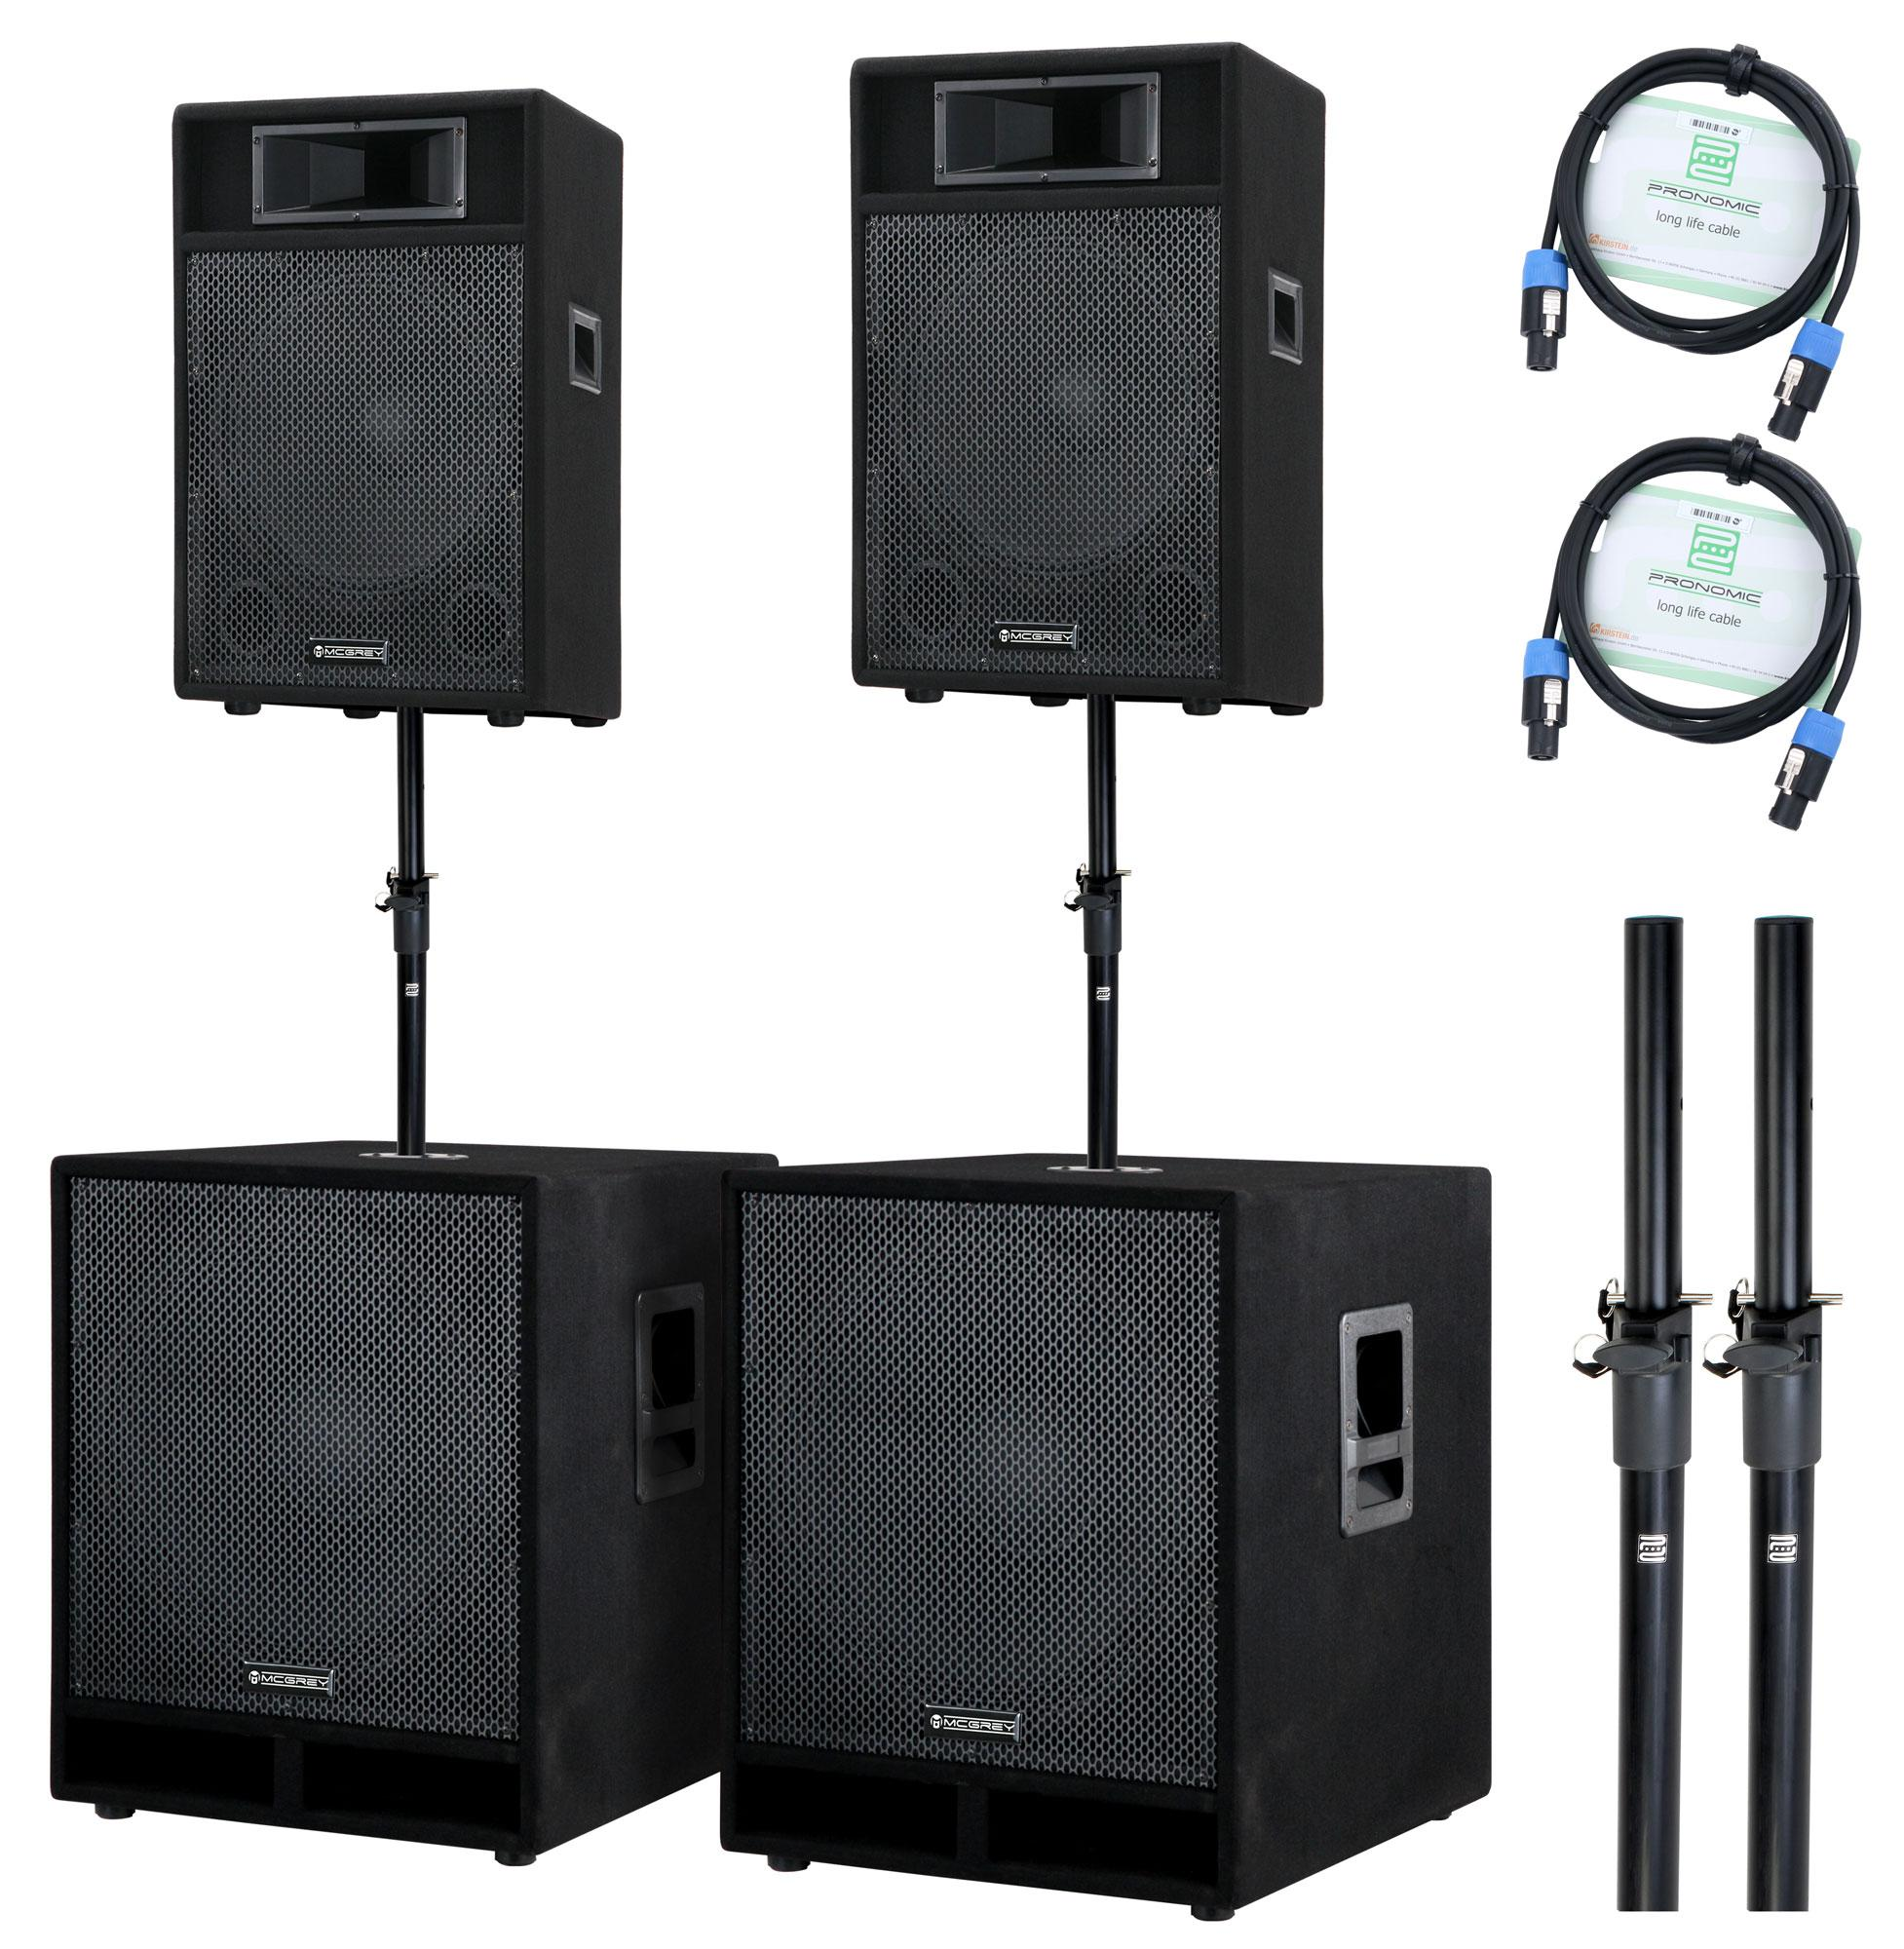 mcgrey stage 4200 pa system 4200 watts. Black Bedroom Furniture Sets. Home Design Ideas